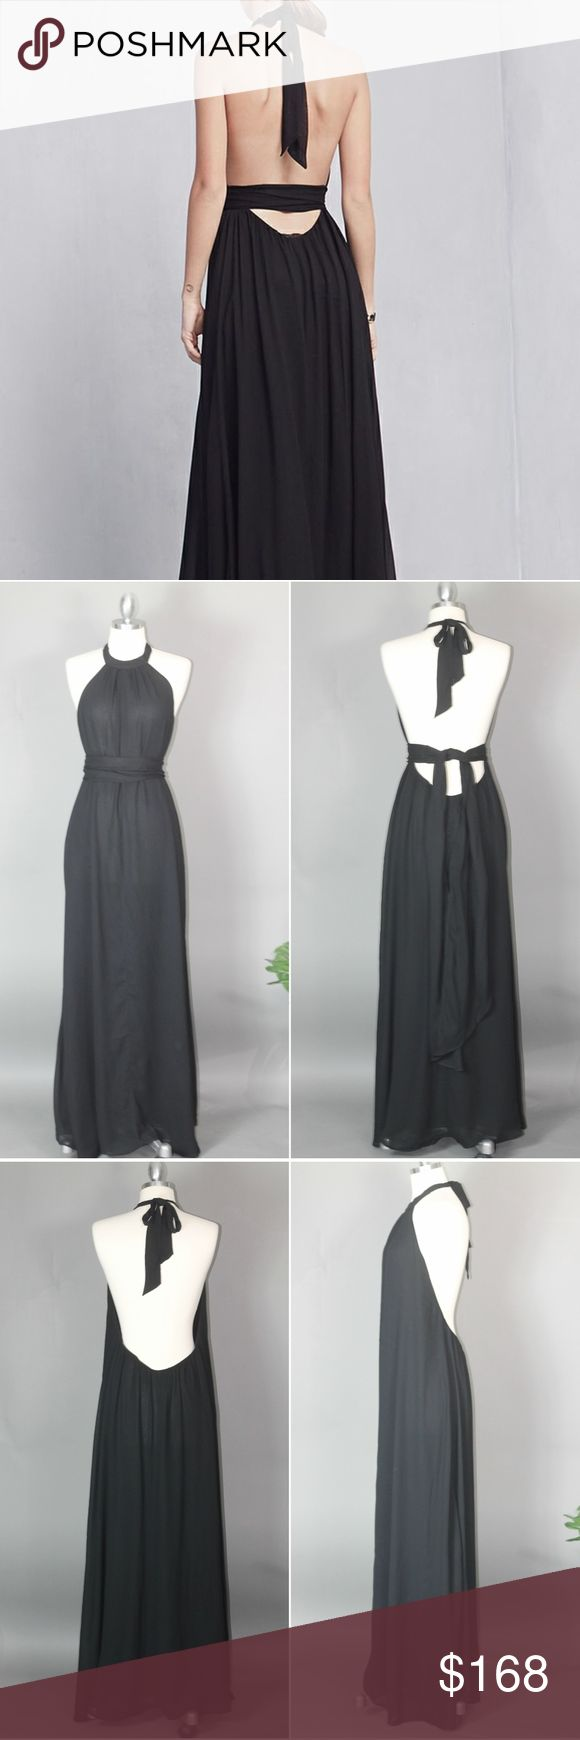 """✂ Reformation Black Halter Maxi Gown SALE Reformation dramatic backless tie neck gown with matching chiffon sash  size xs/s approx 57"""" long (feel like it may have gotten 1-2"""" shorter when washed which was better for me) preowned- worn a couple of times, hand laundered. The fabric has a couple of minor imperfections - some puckering at the seams. 1 or 2 v mild discolorations (see pic) I only noticed in certain light. bit of pilling/rubbing -due to nature of this fabric. Wrinkles easily. Such…"""